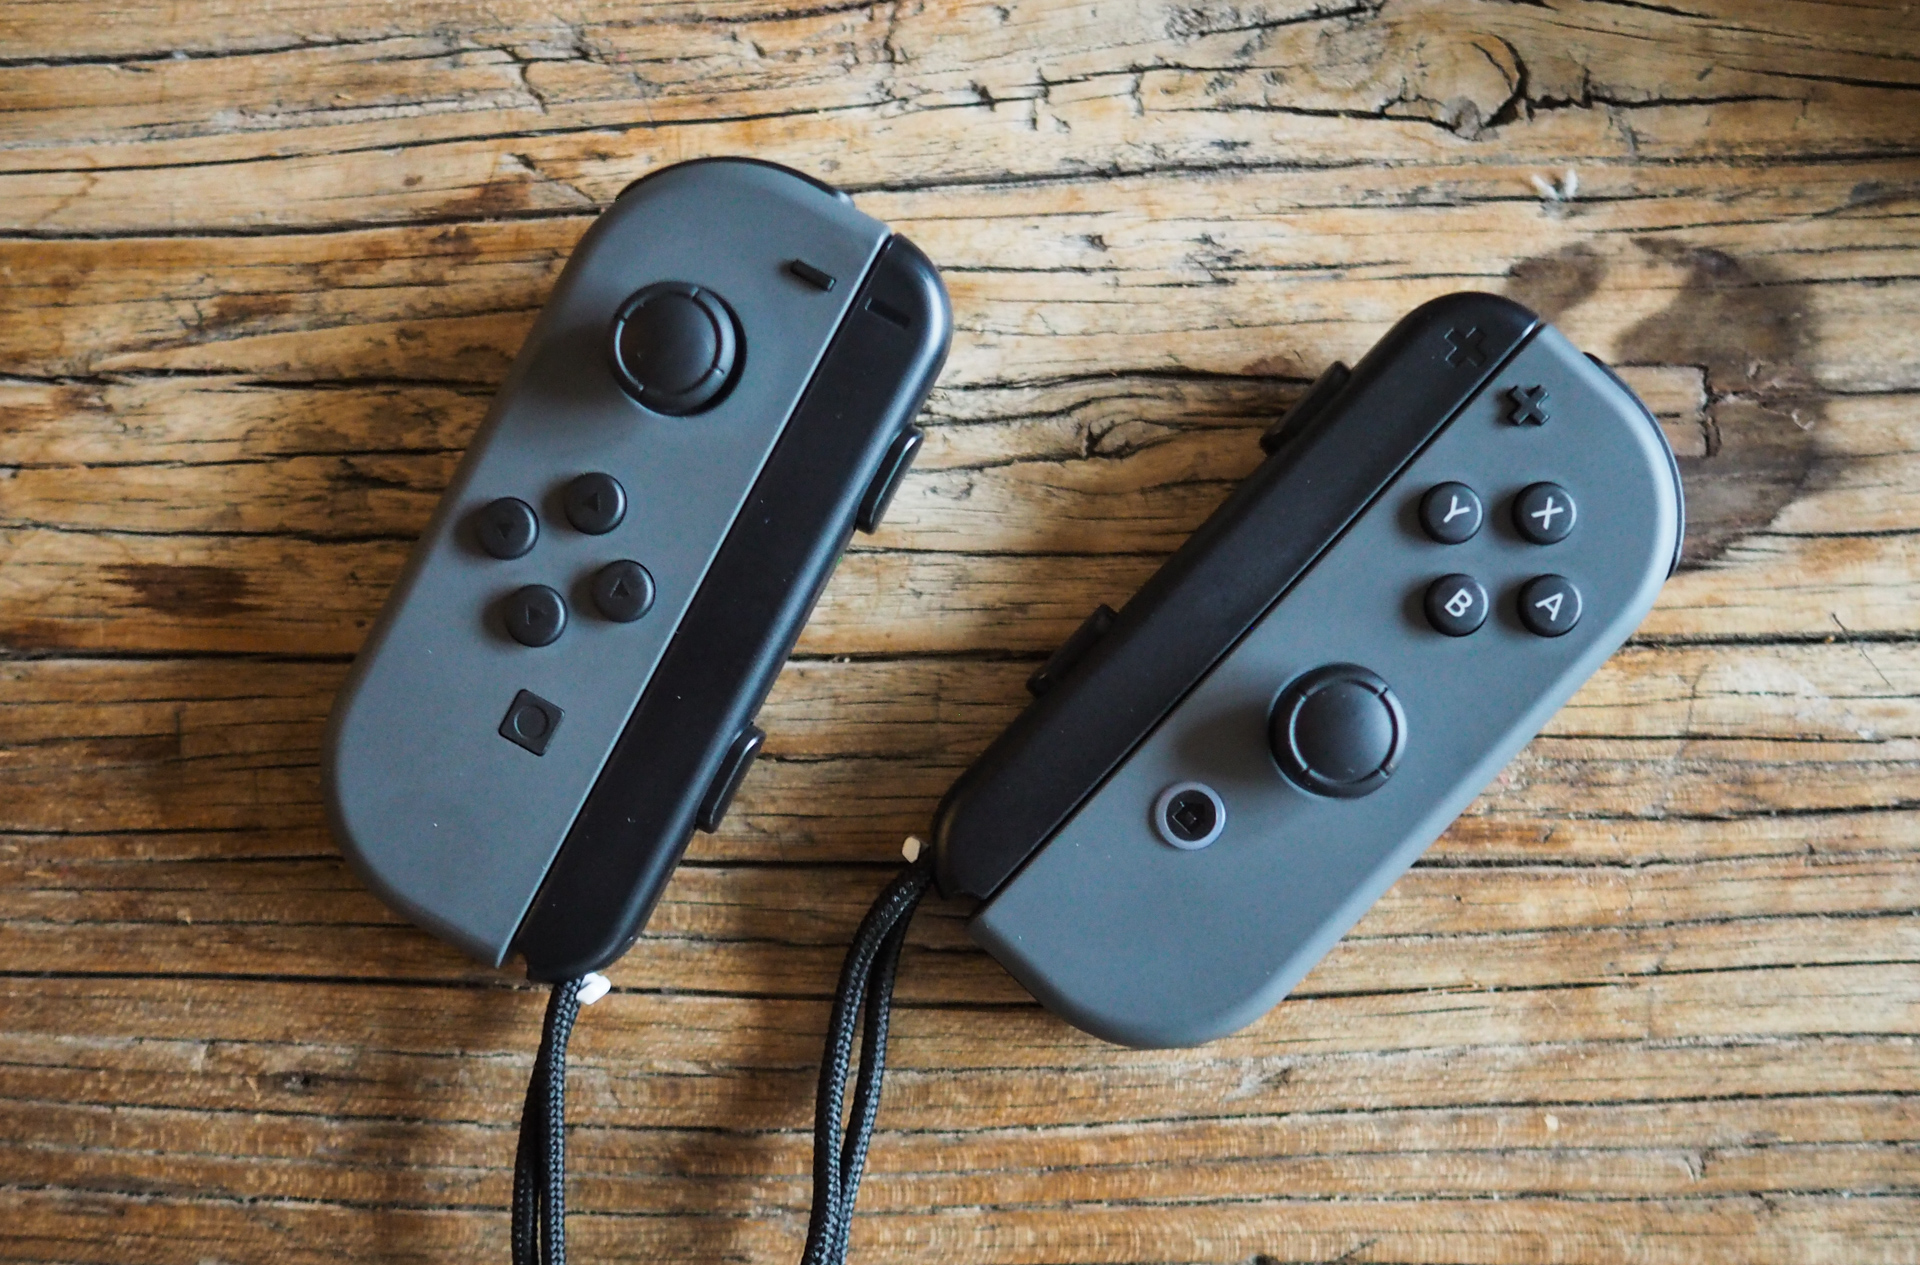 Nintendo Switch Joy-Con and Pro controllers work on PC, Mac and